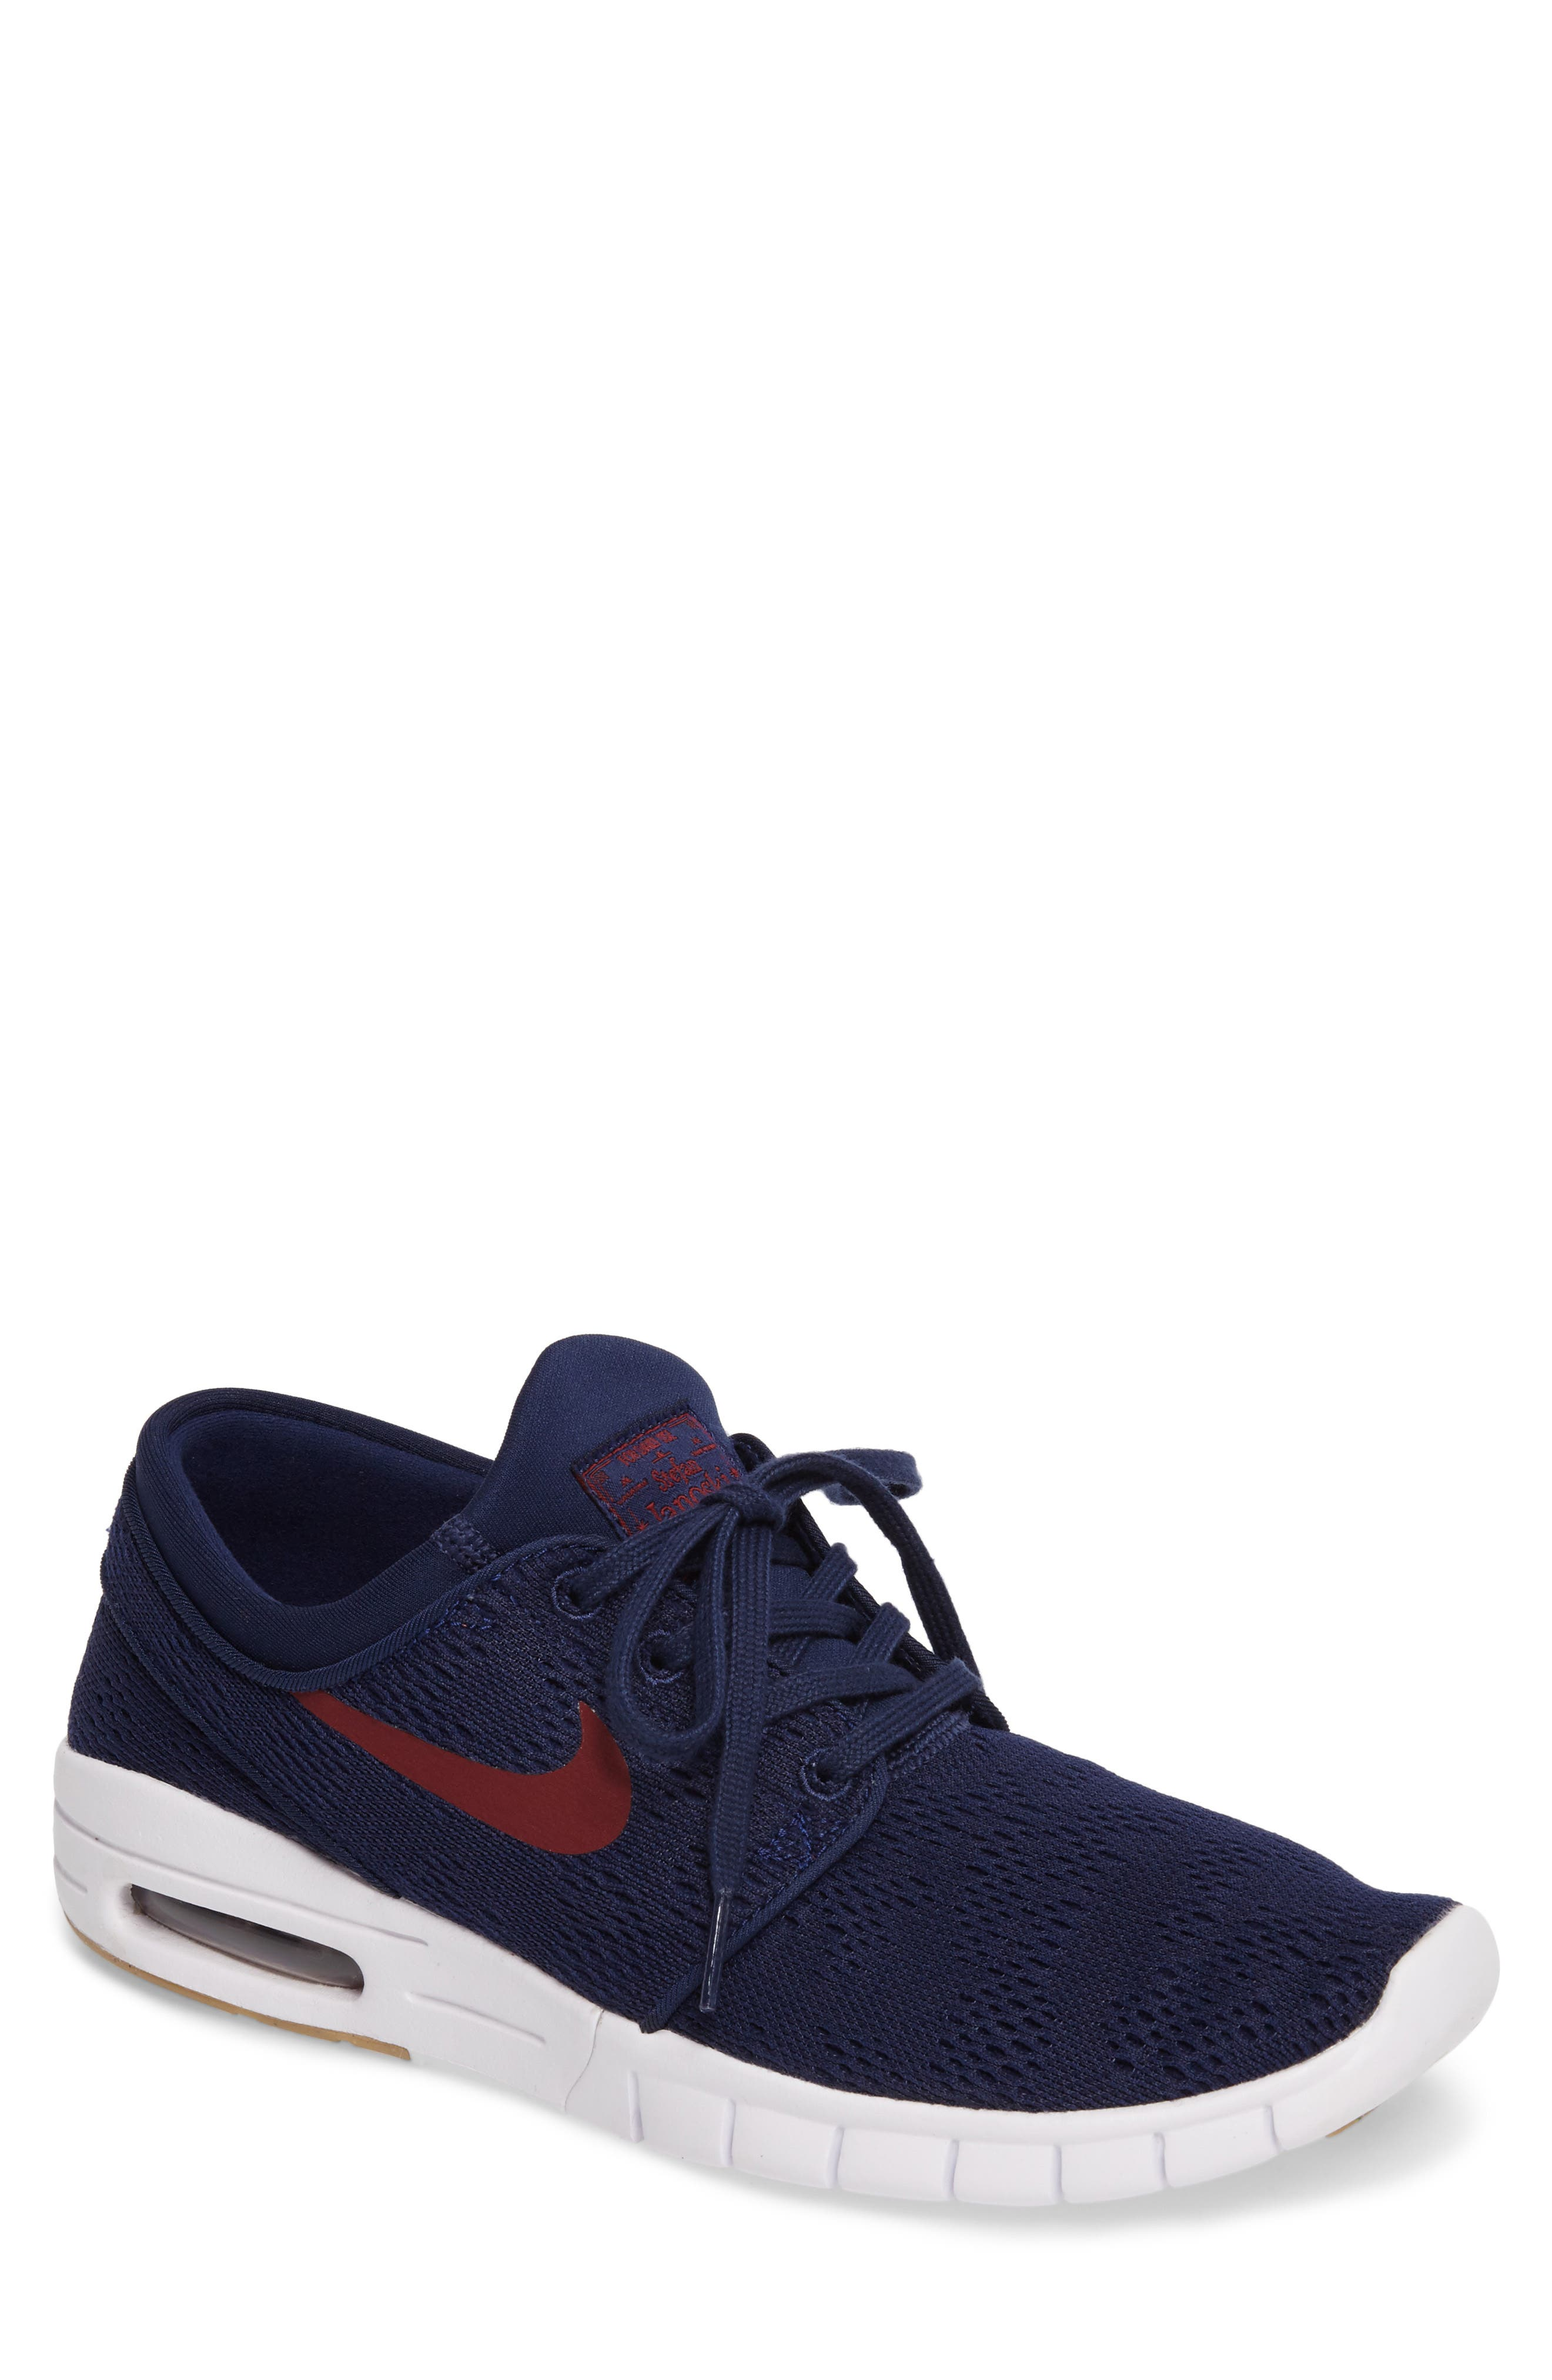 Alternate Image 1 Selected - Nike 'Stefan Janoski - Max SB' Skate Shoe (Men)